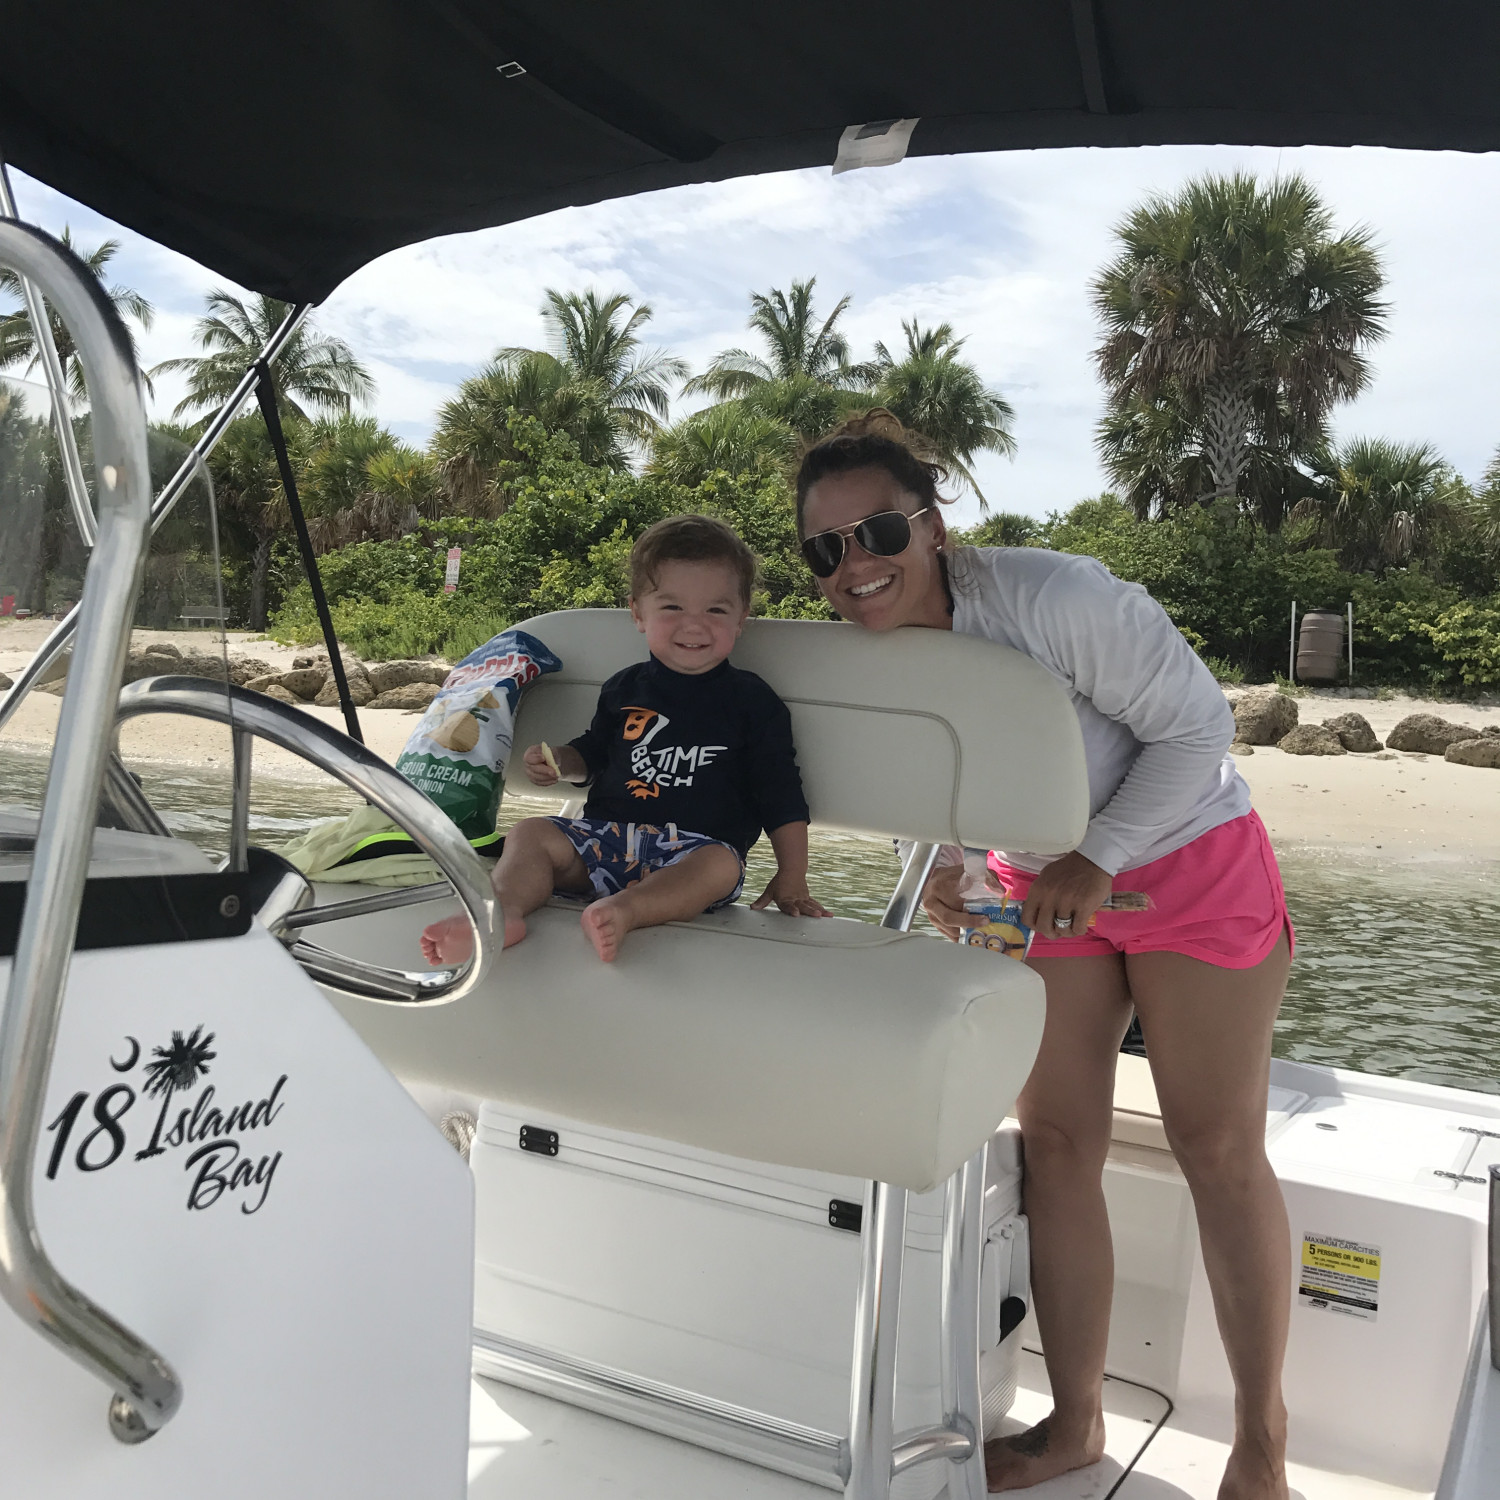 Title: Island time - On board their Sportsman Island Bay 18 Bay Boat - Location: Palm Beach FL. Participating in the Photo Contest #SportsmanMarch2018